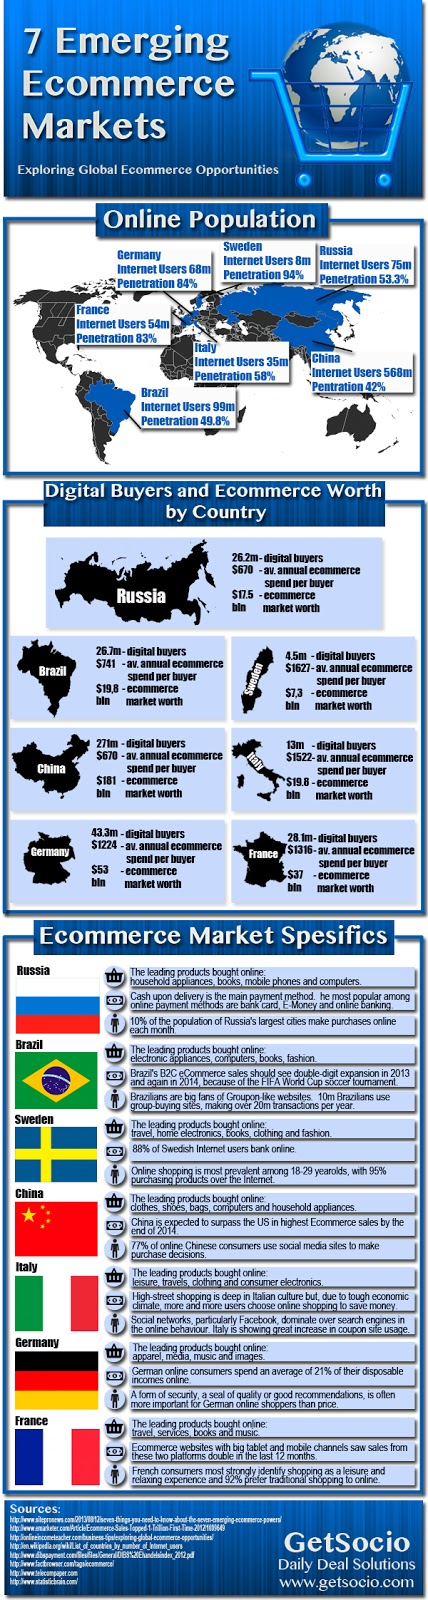 Global ecommerce opportunities